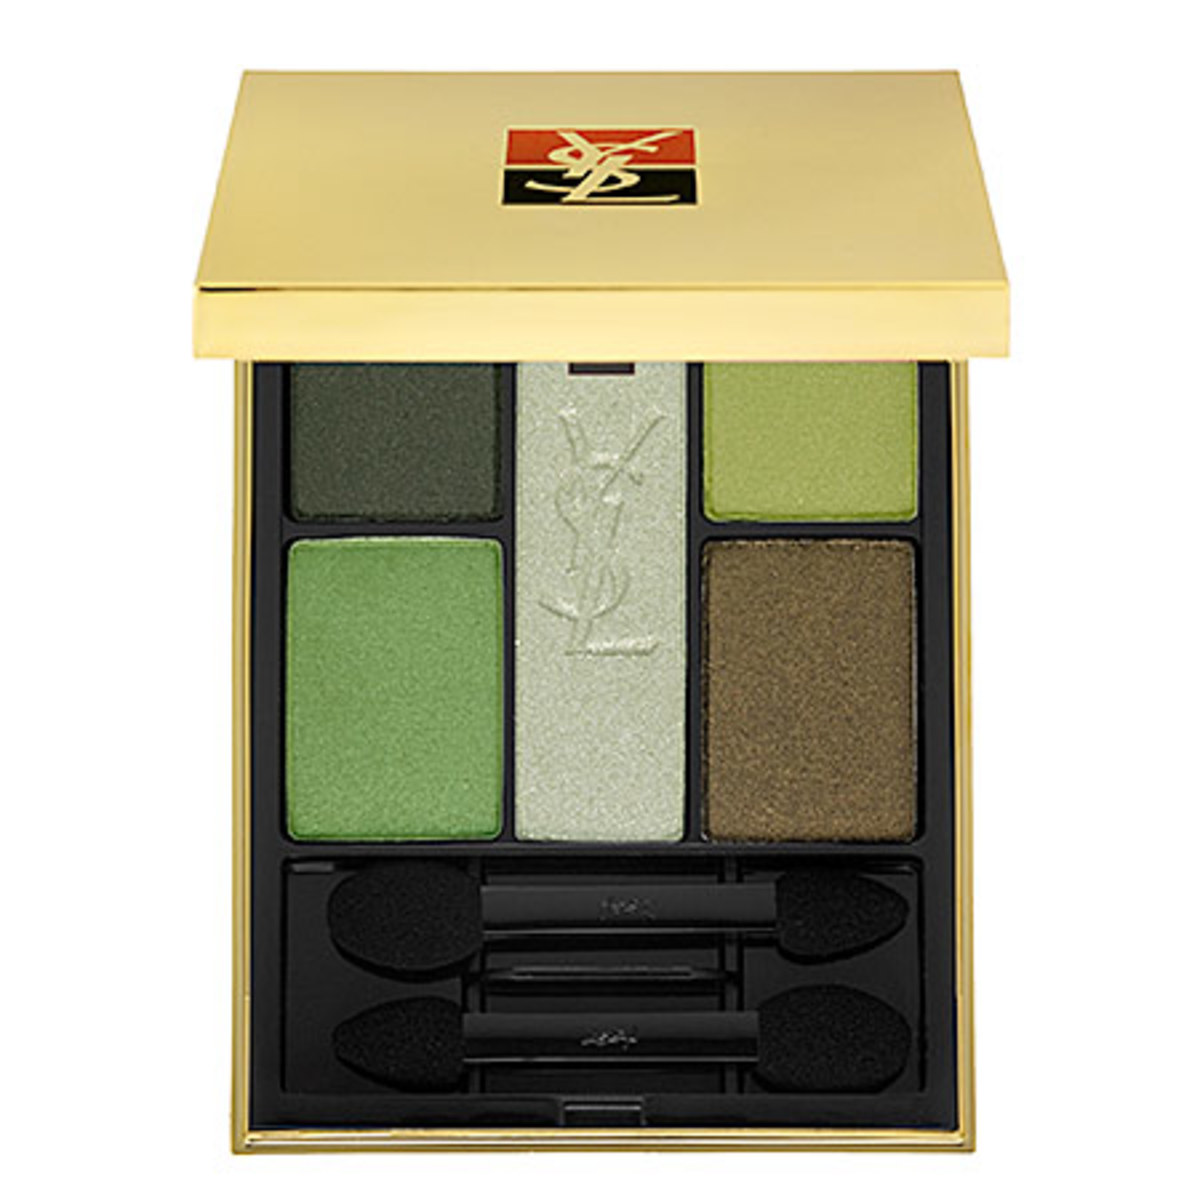 Yves Saint Laurent Ombres 5 Lumieres 5 Colour Harmony for Eyes in 6 Garden of Eden